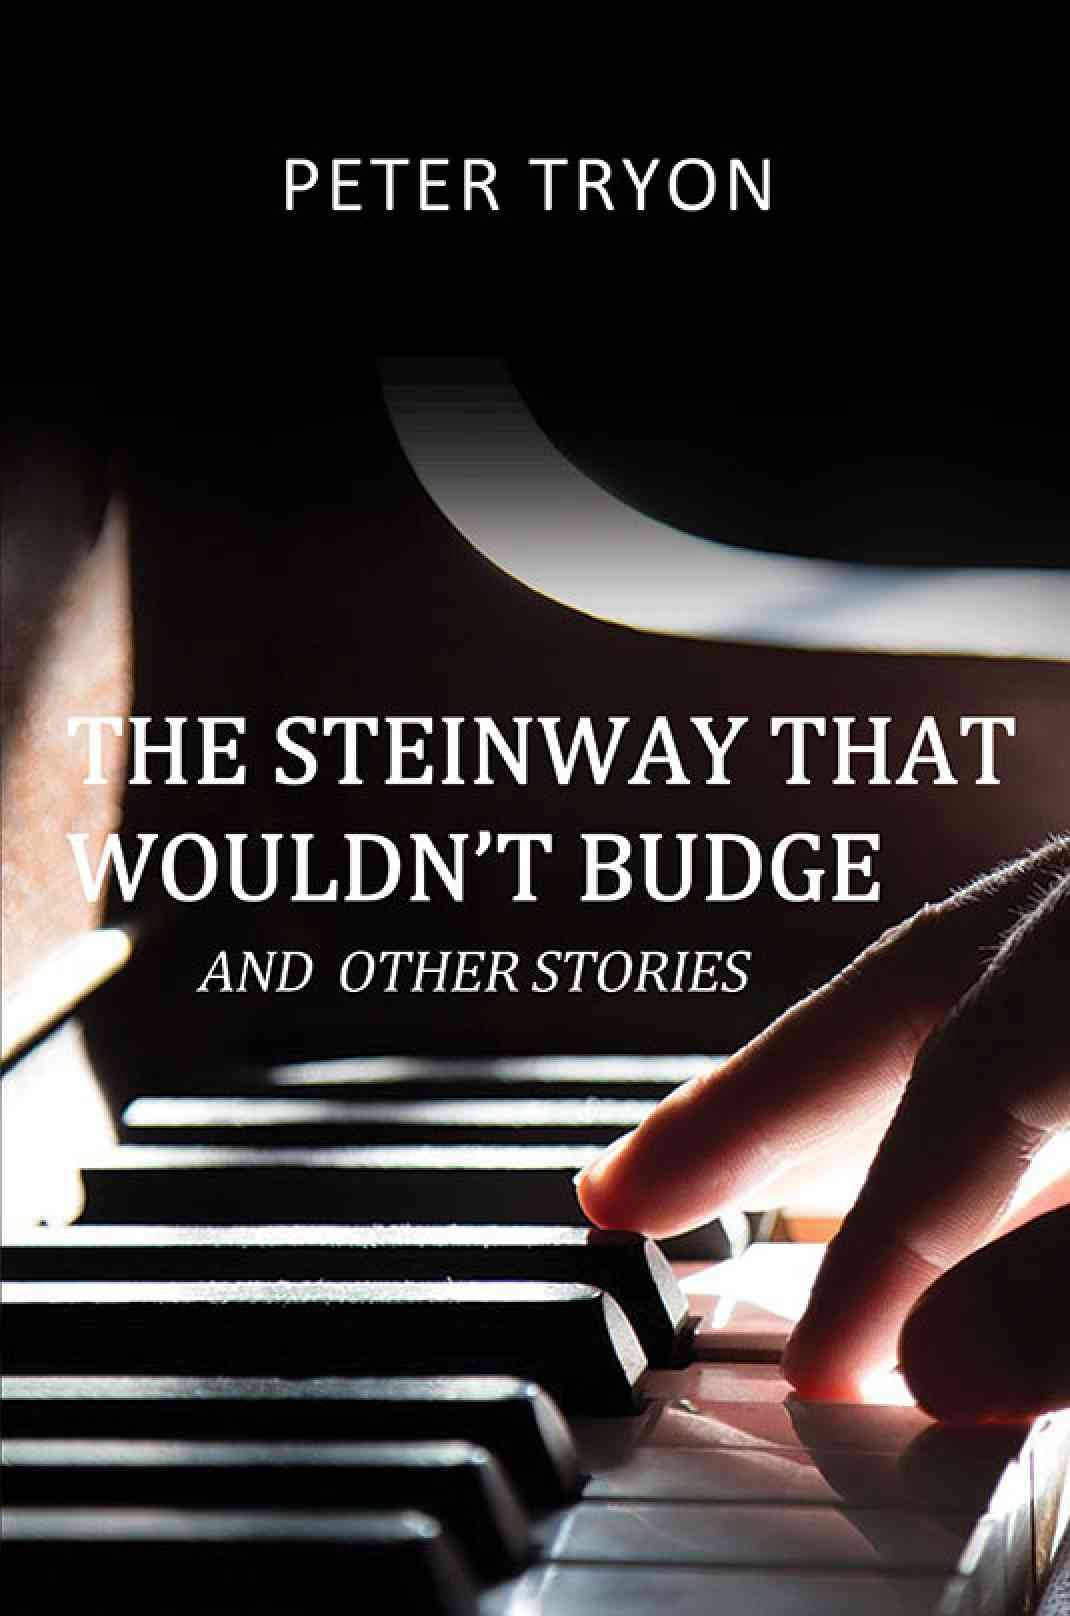 The Steinway That Wouldn't Budge (Confessions of a Piano Tuner)